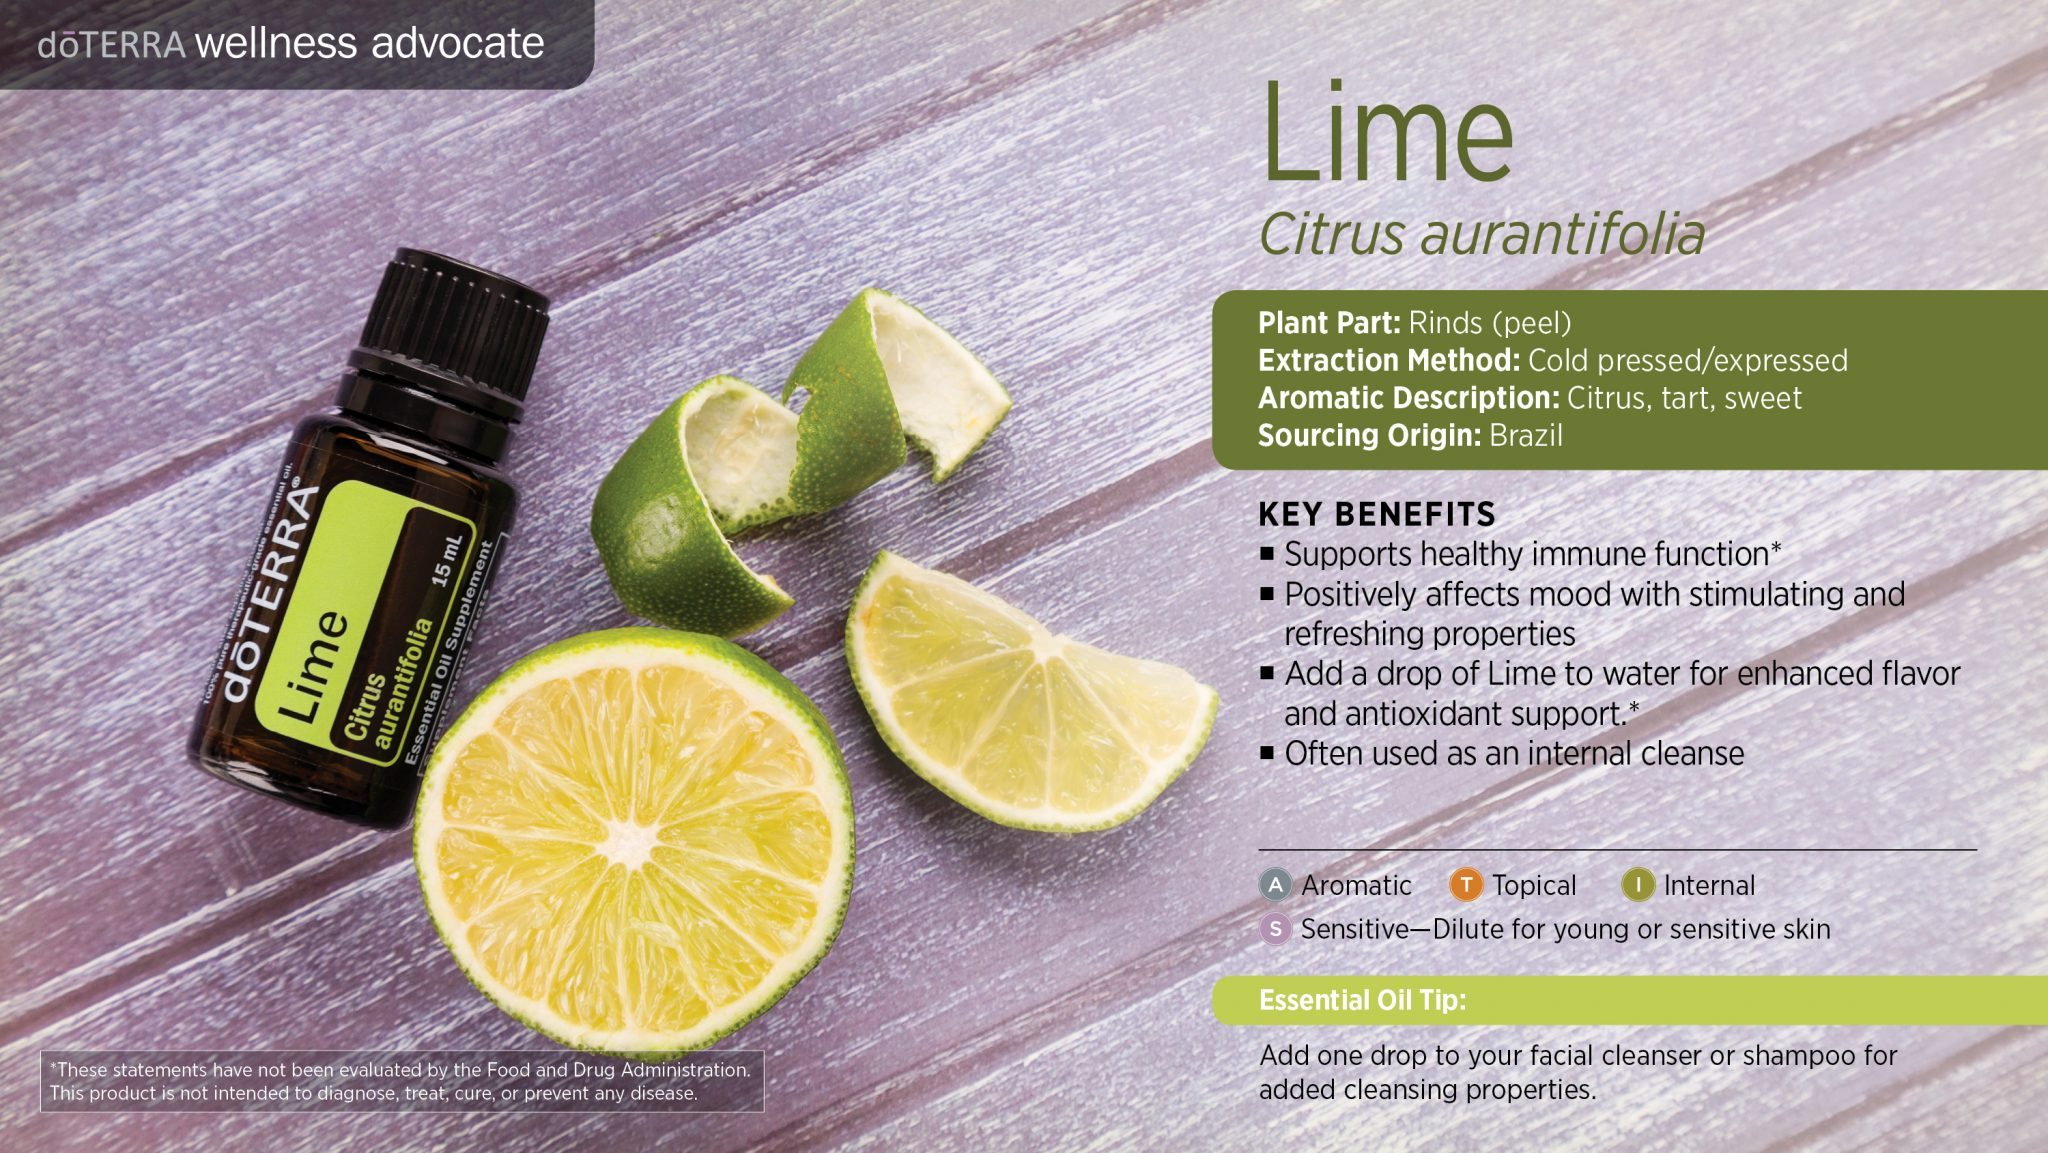 doterra lime oil